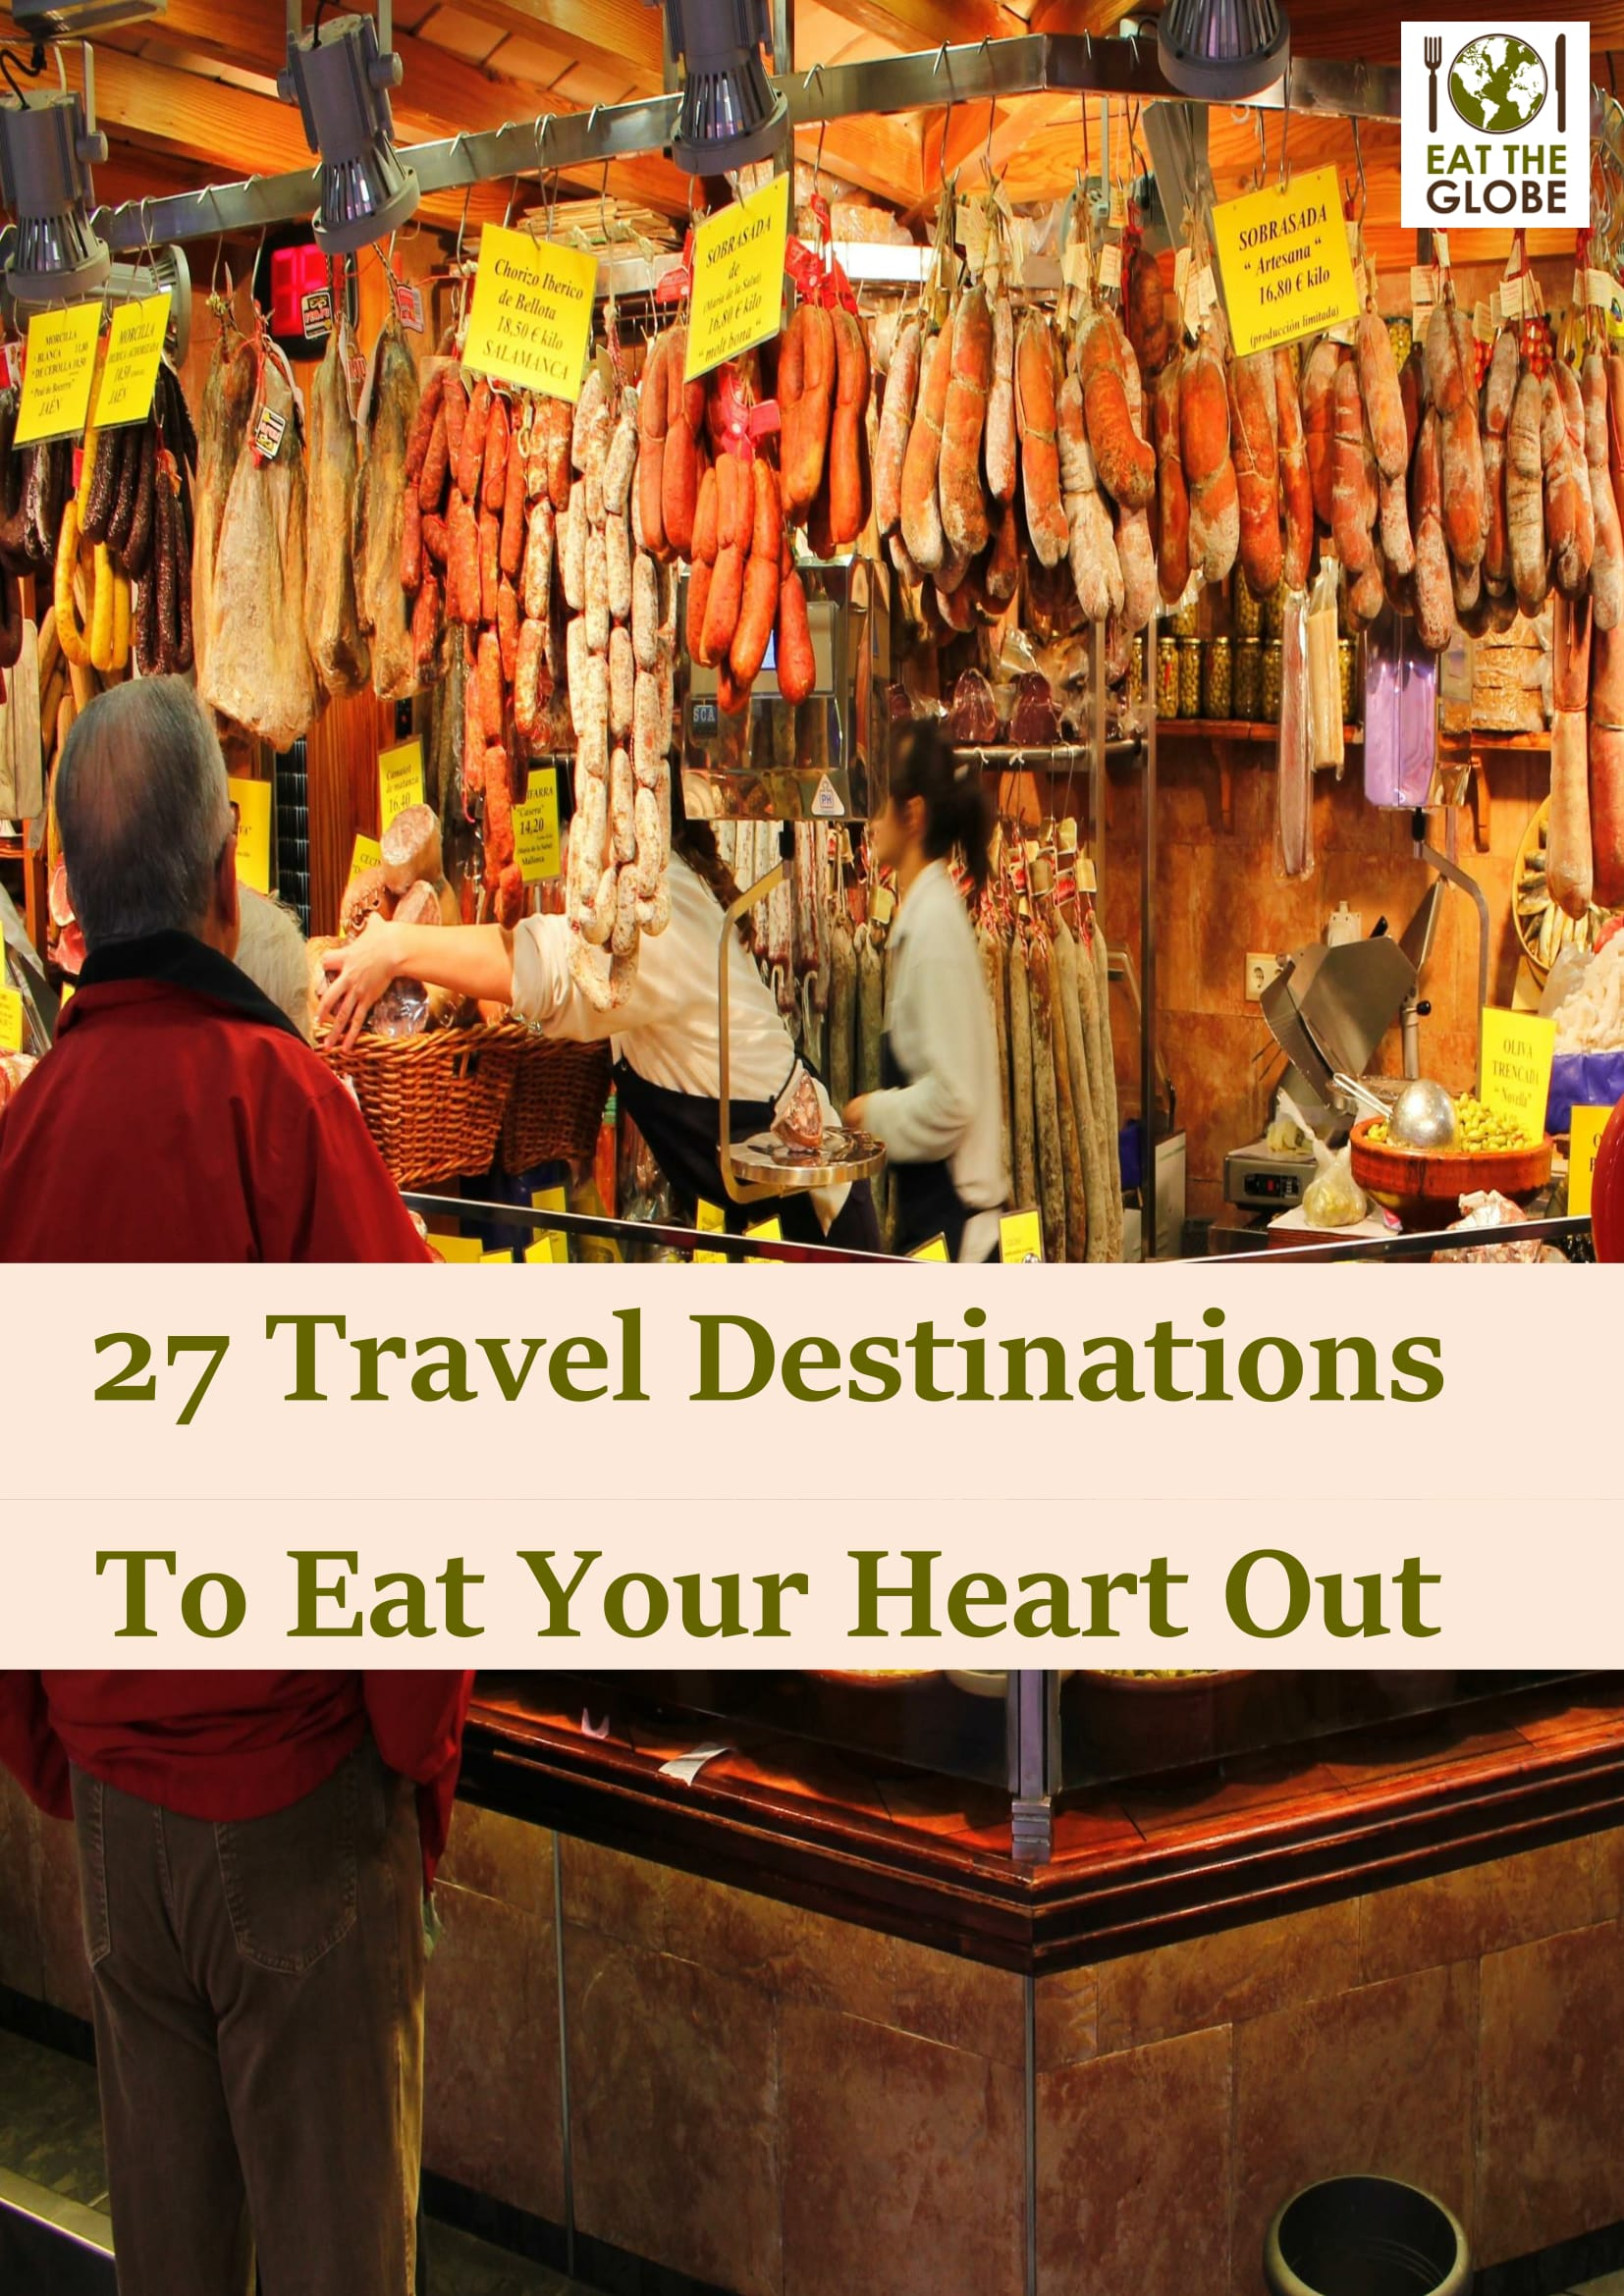 27 Travel Destinations To Eat Your Heart Out